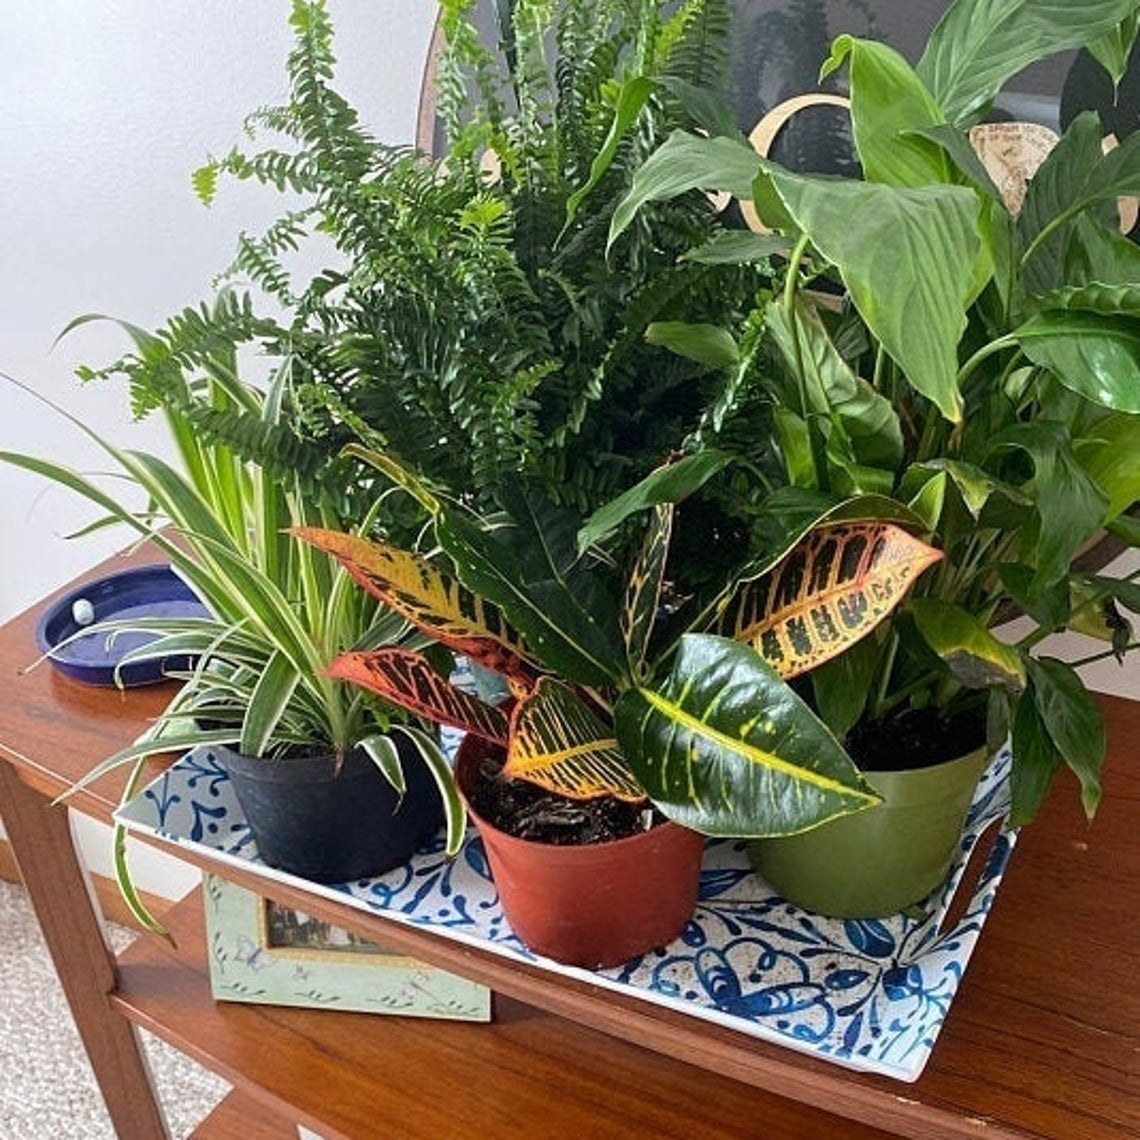 Four mid-sized plants on a table. Each with different leaves.